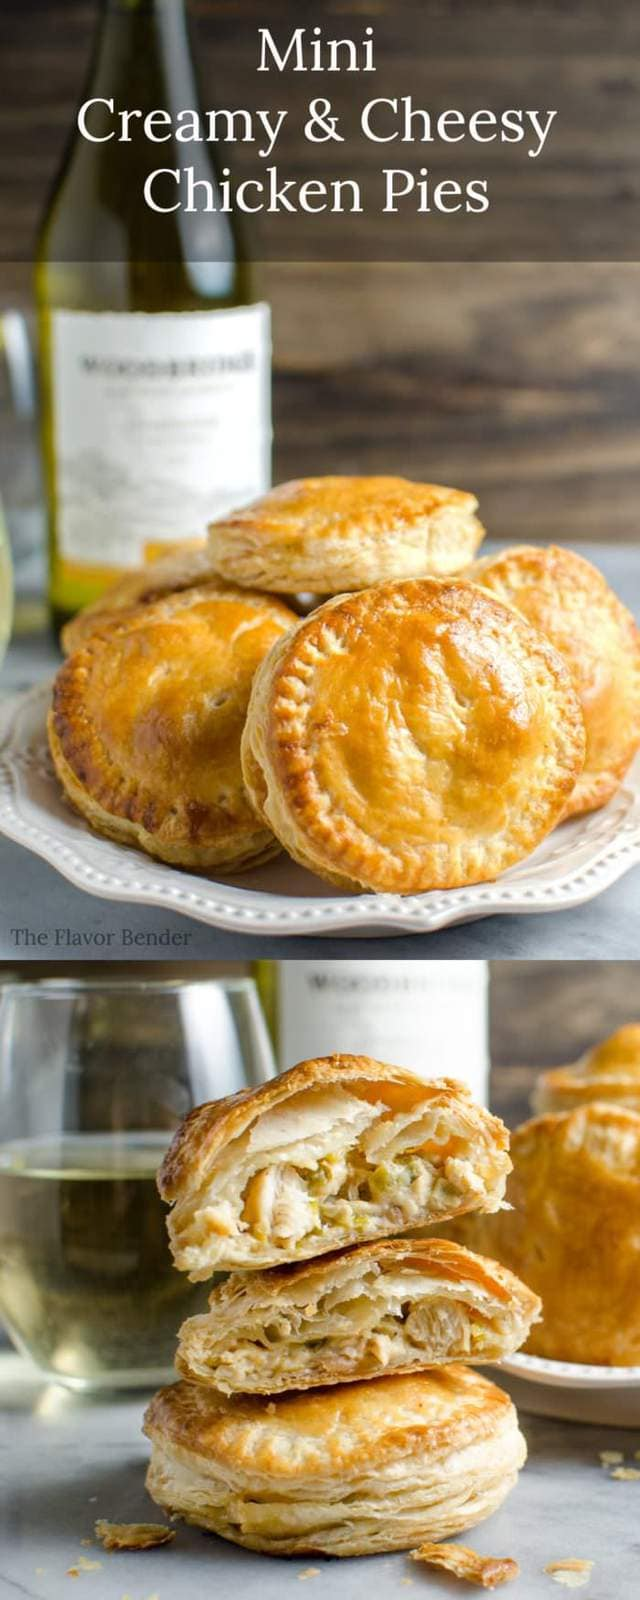 Mini Creamy and Cheesy Chicken Pies - The perfect snacks for the Big Game (or any party!). Tastes like mini Chicken Pot Pies but better! Plus learn how to pair these with the perfect wine. #sponsored #flavorsofthegame #collectivebias Msg 4 21+